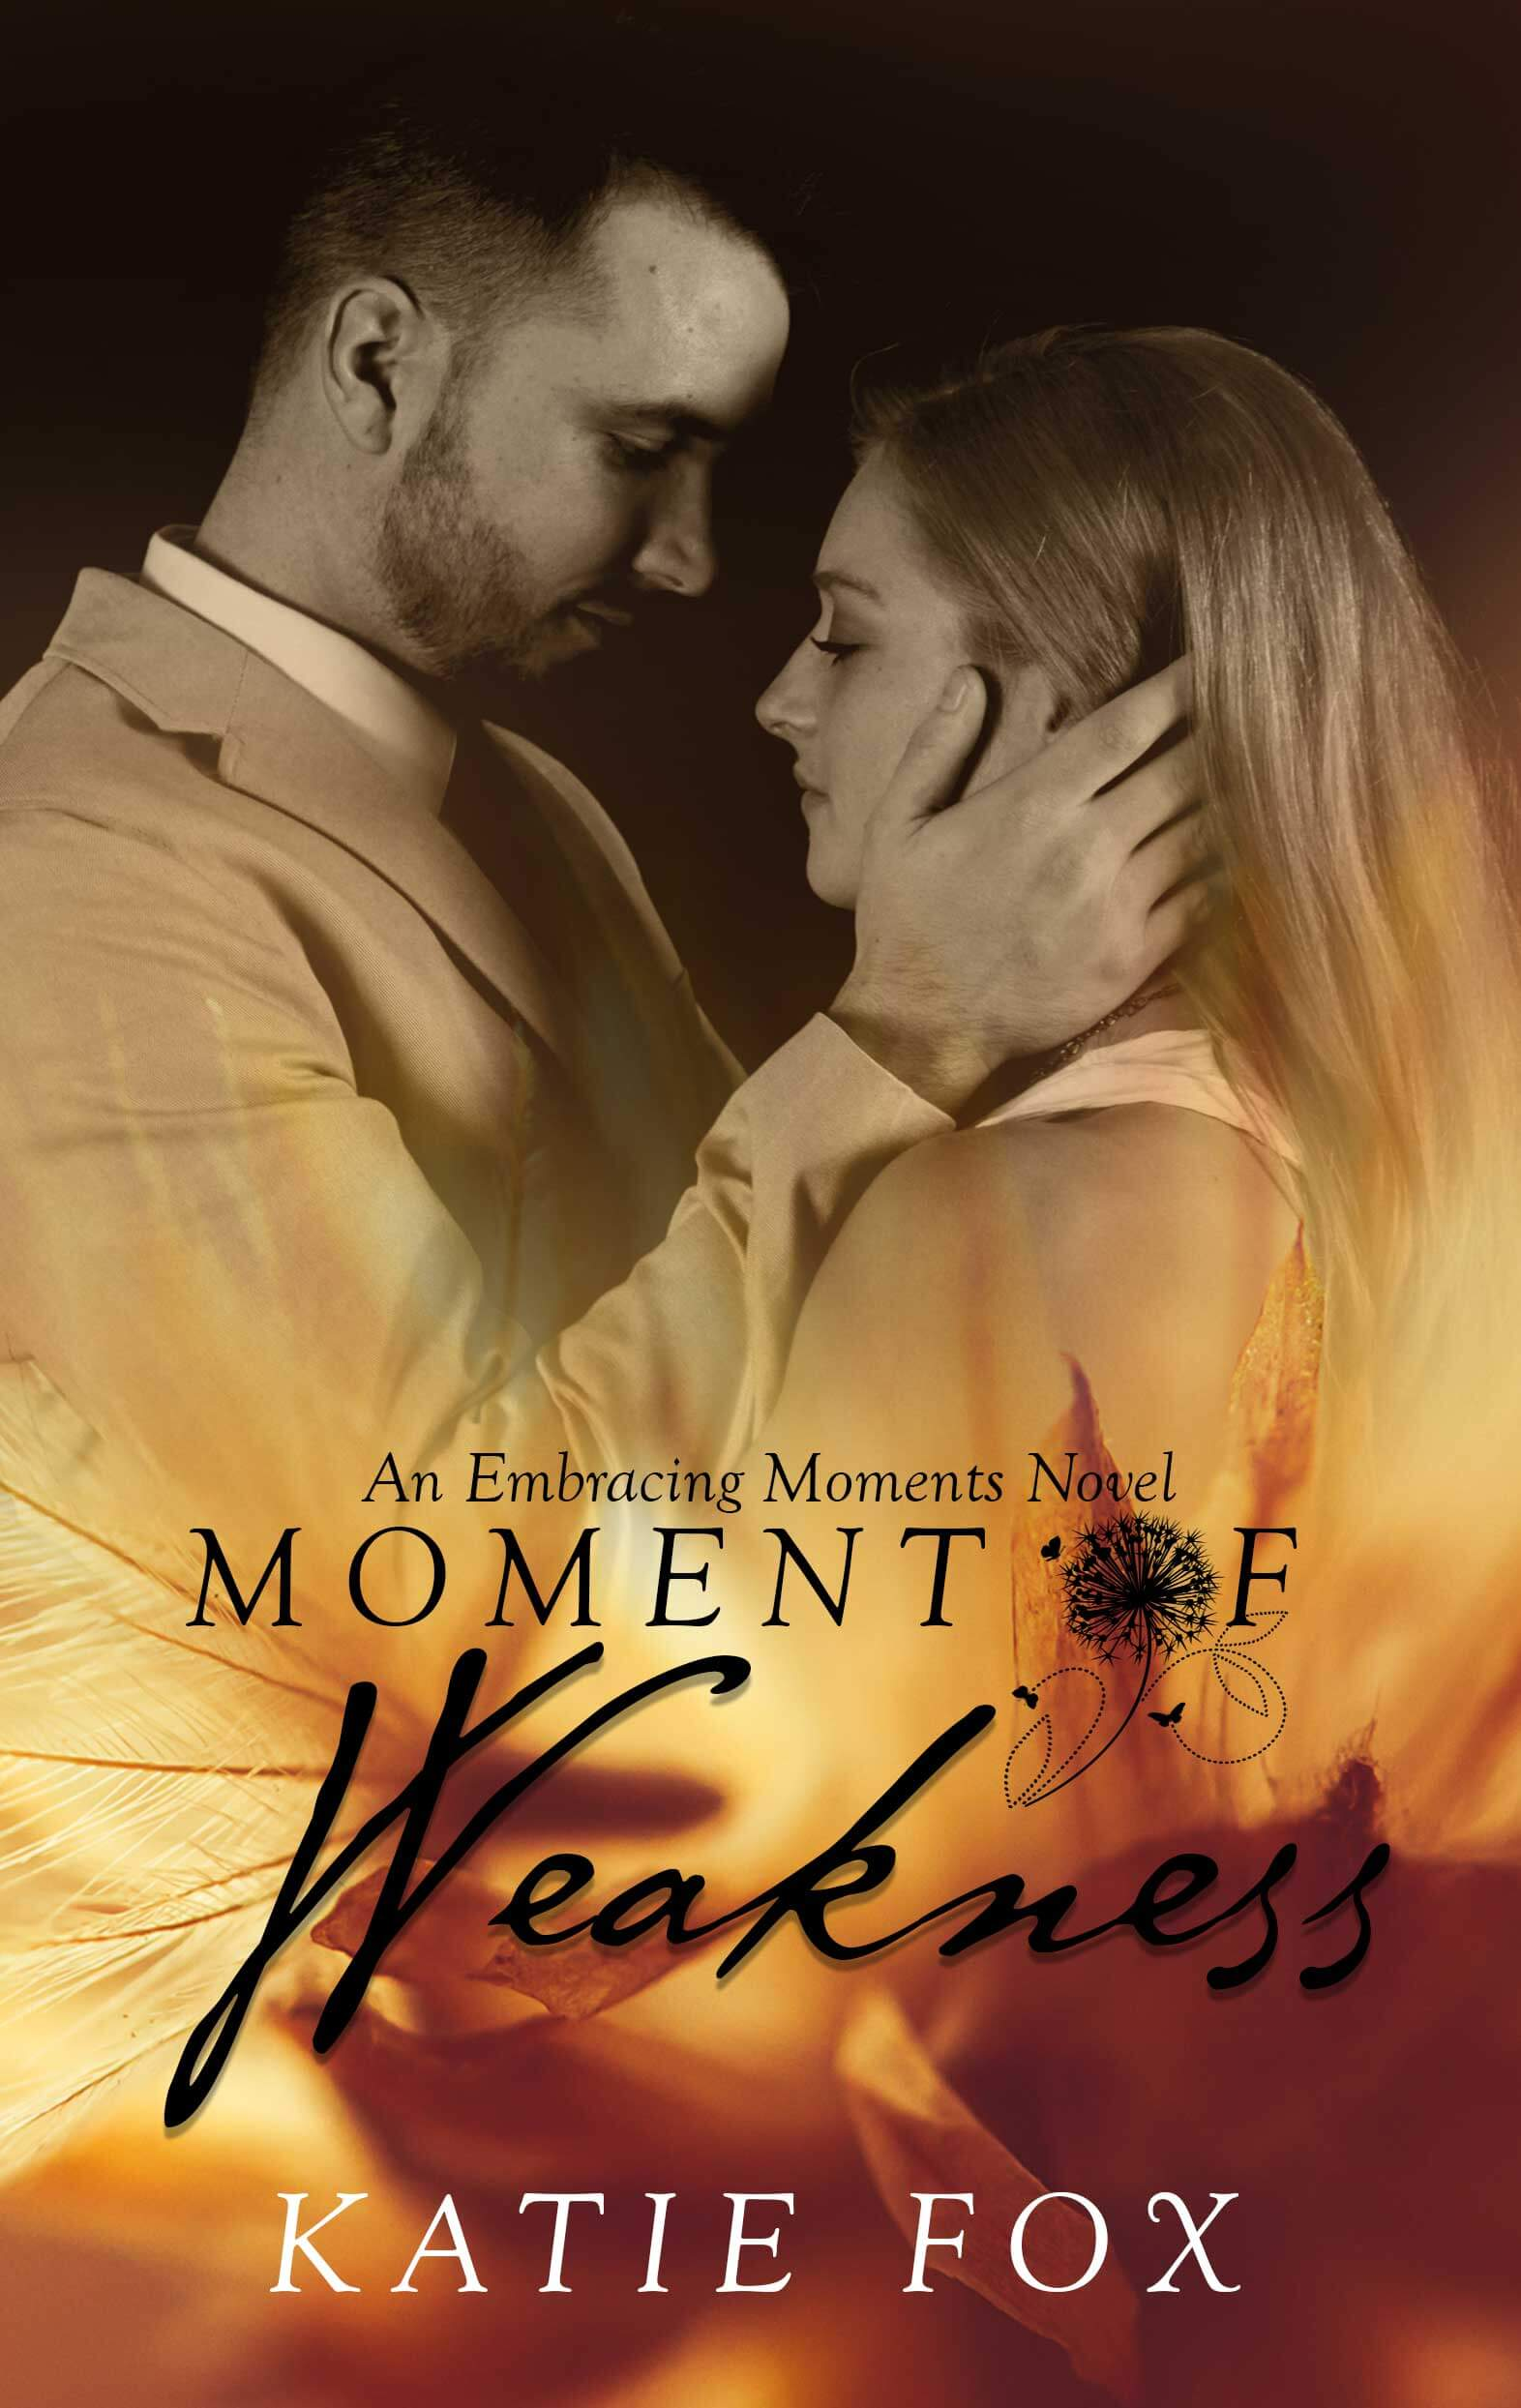 Review: Moment of Weakness